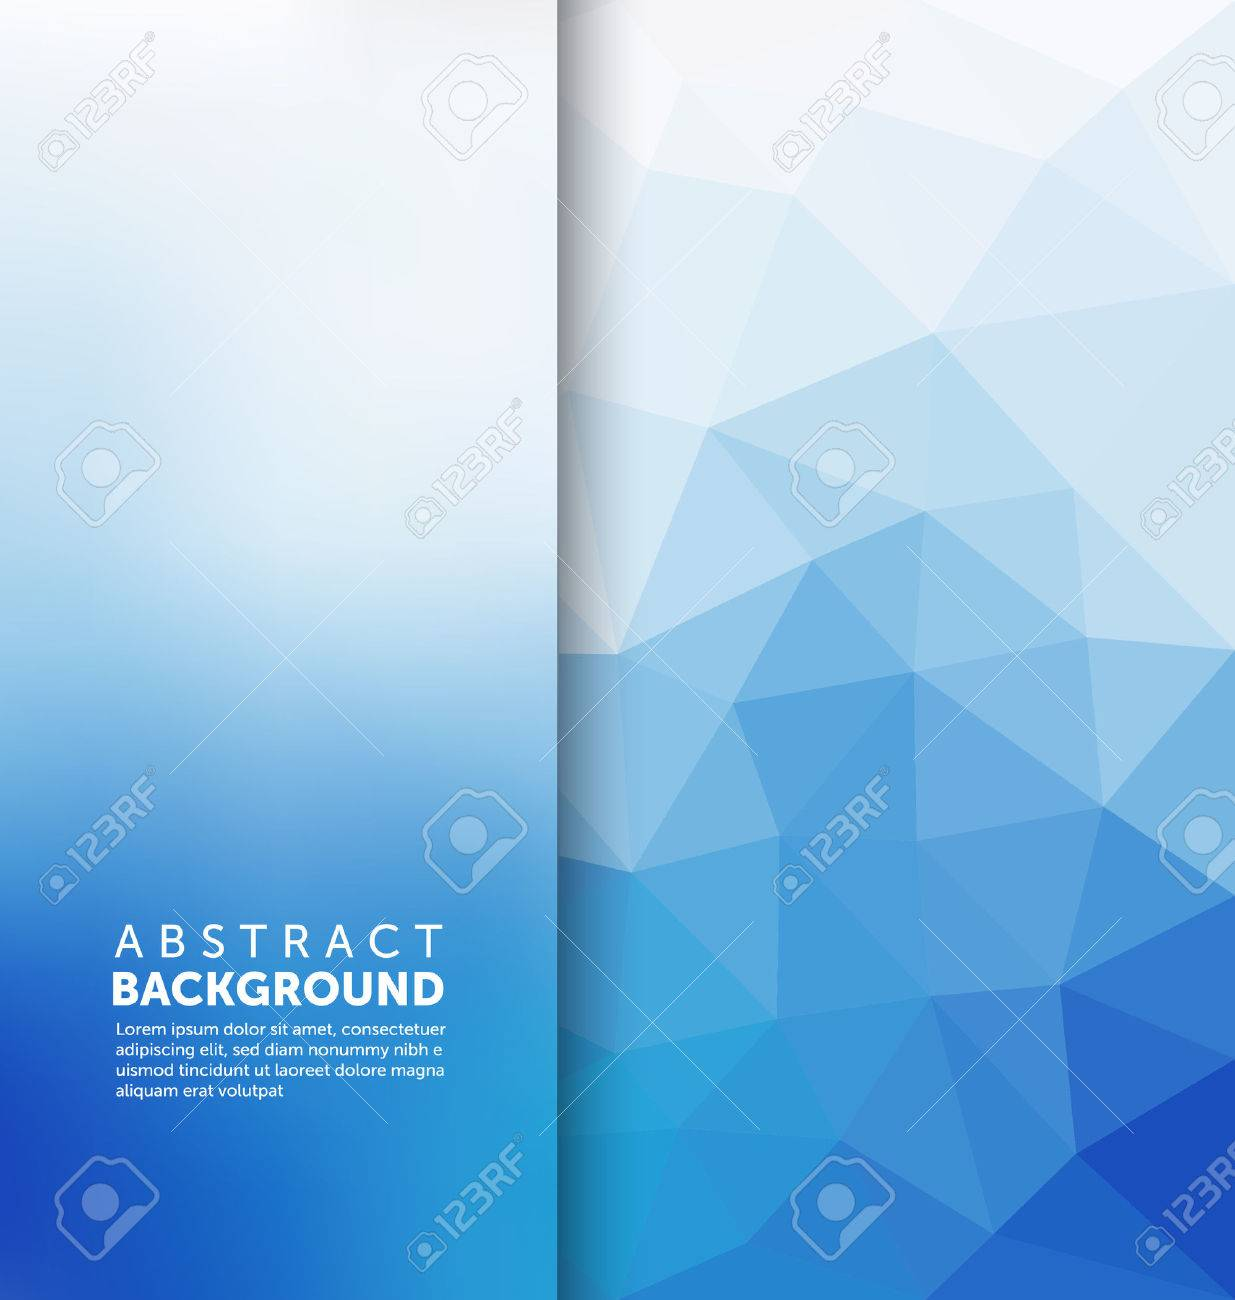 Abstract Background - Triangle and blurred banner design - 45168409